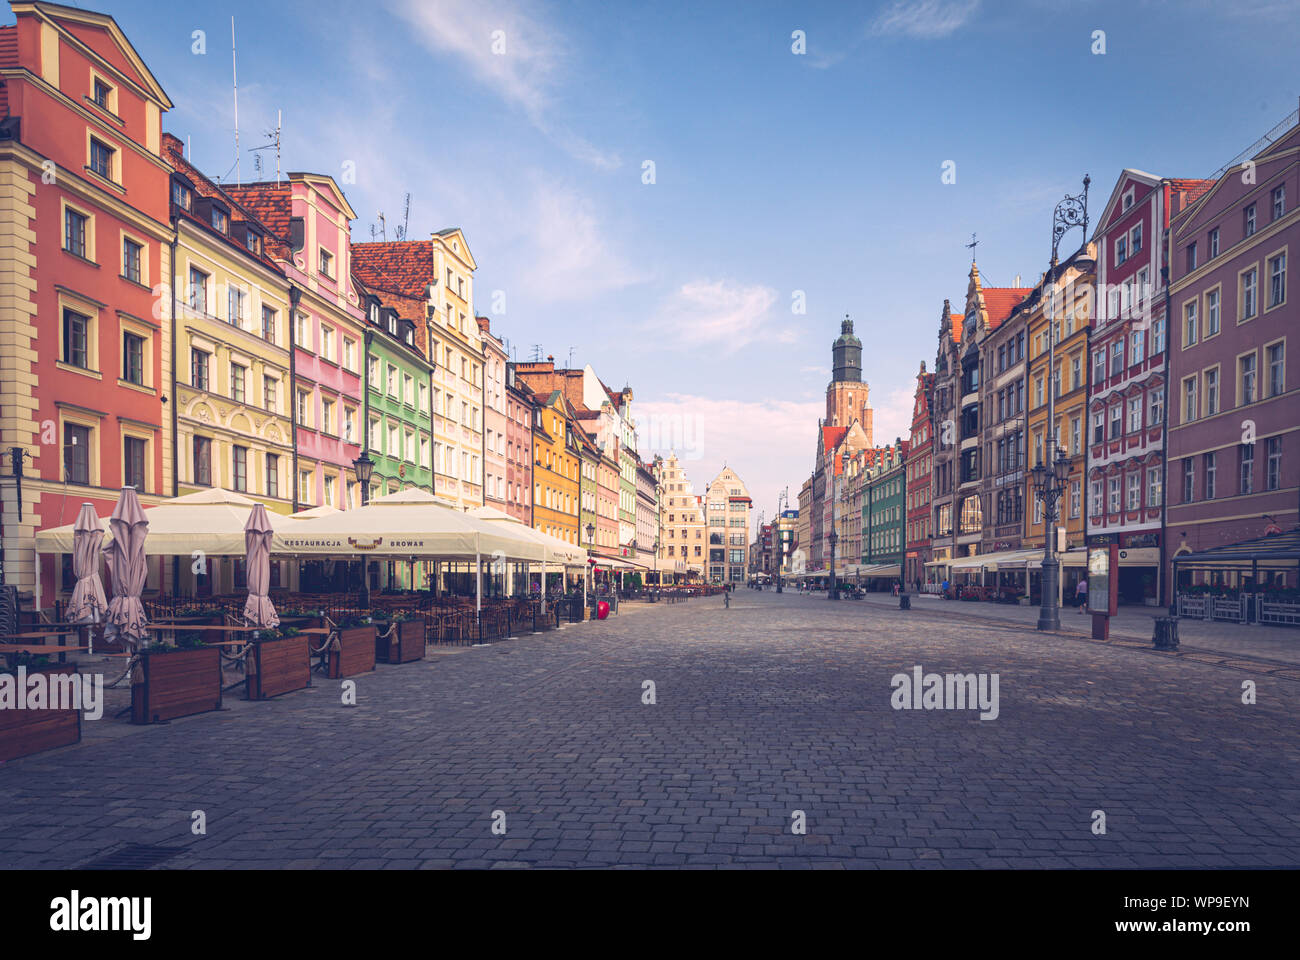 Wroclaw. the main market in the old city. June 2019 Stock Photo